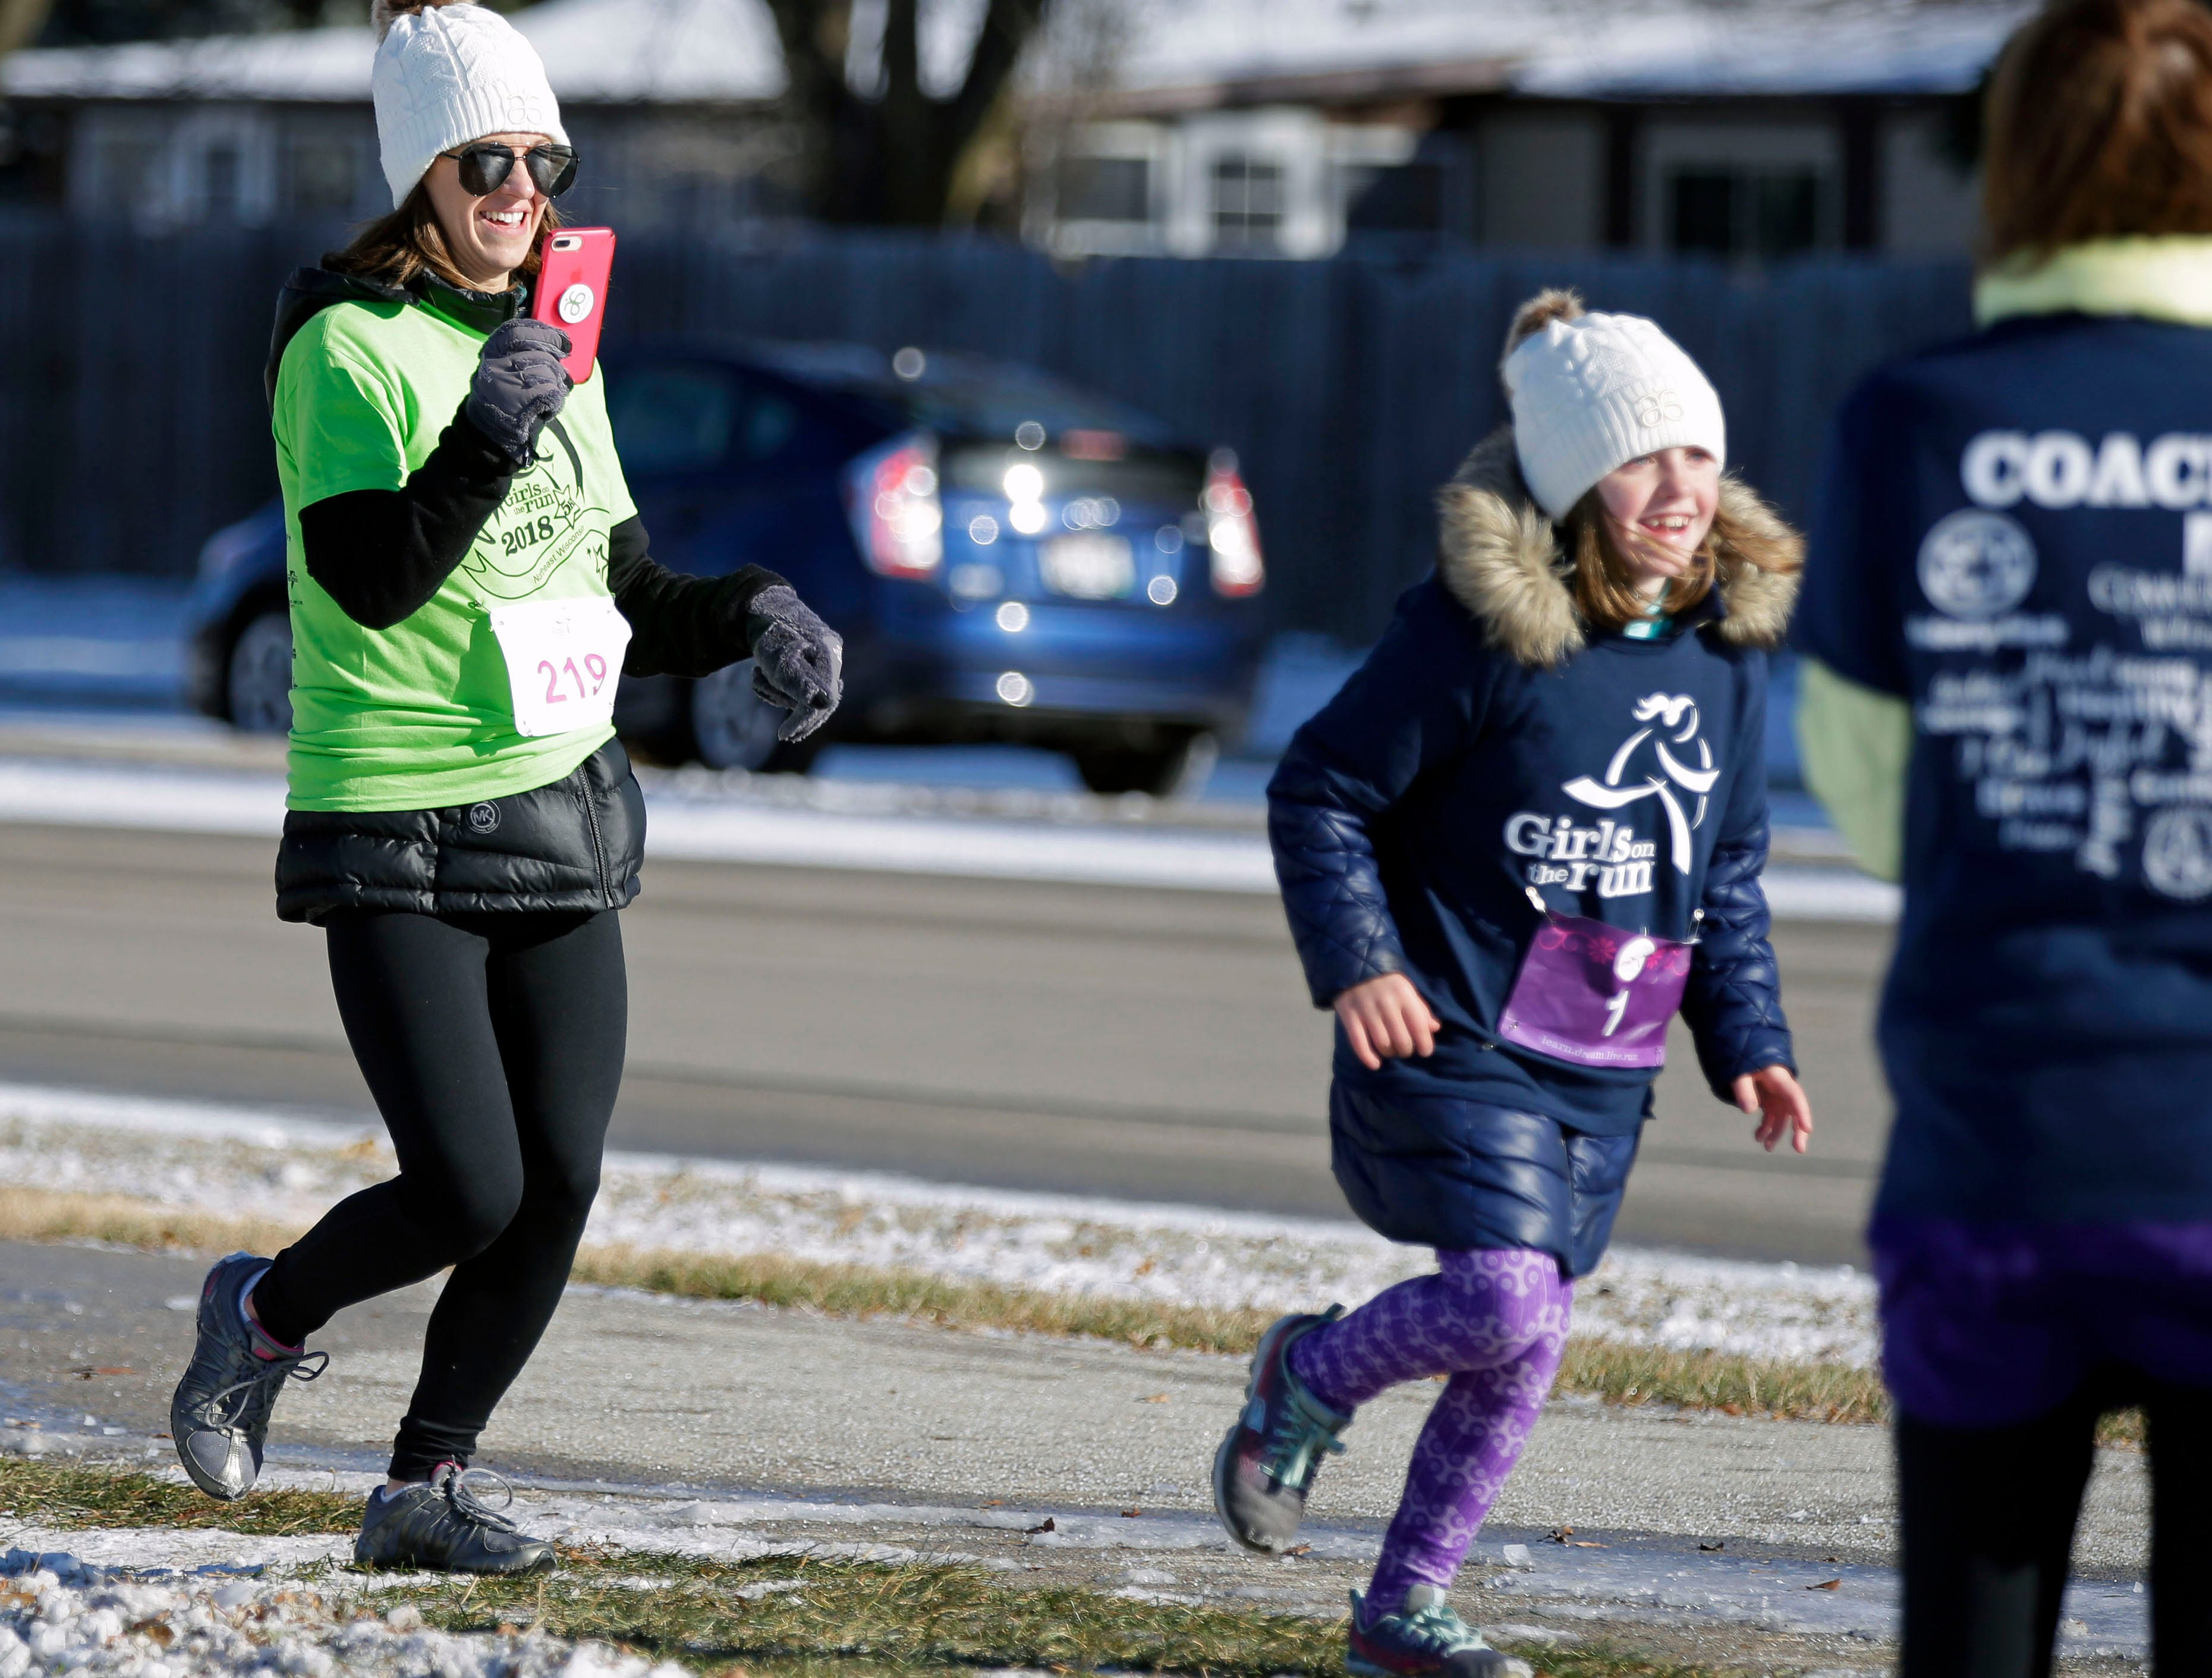 The Girls on the Run Celebration 5K takes place Saturday, November 10, 2018, at FVTC in Appleton, Wis. The event completes a 10-week program teaching life skills to inspire and empower girls.